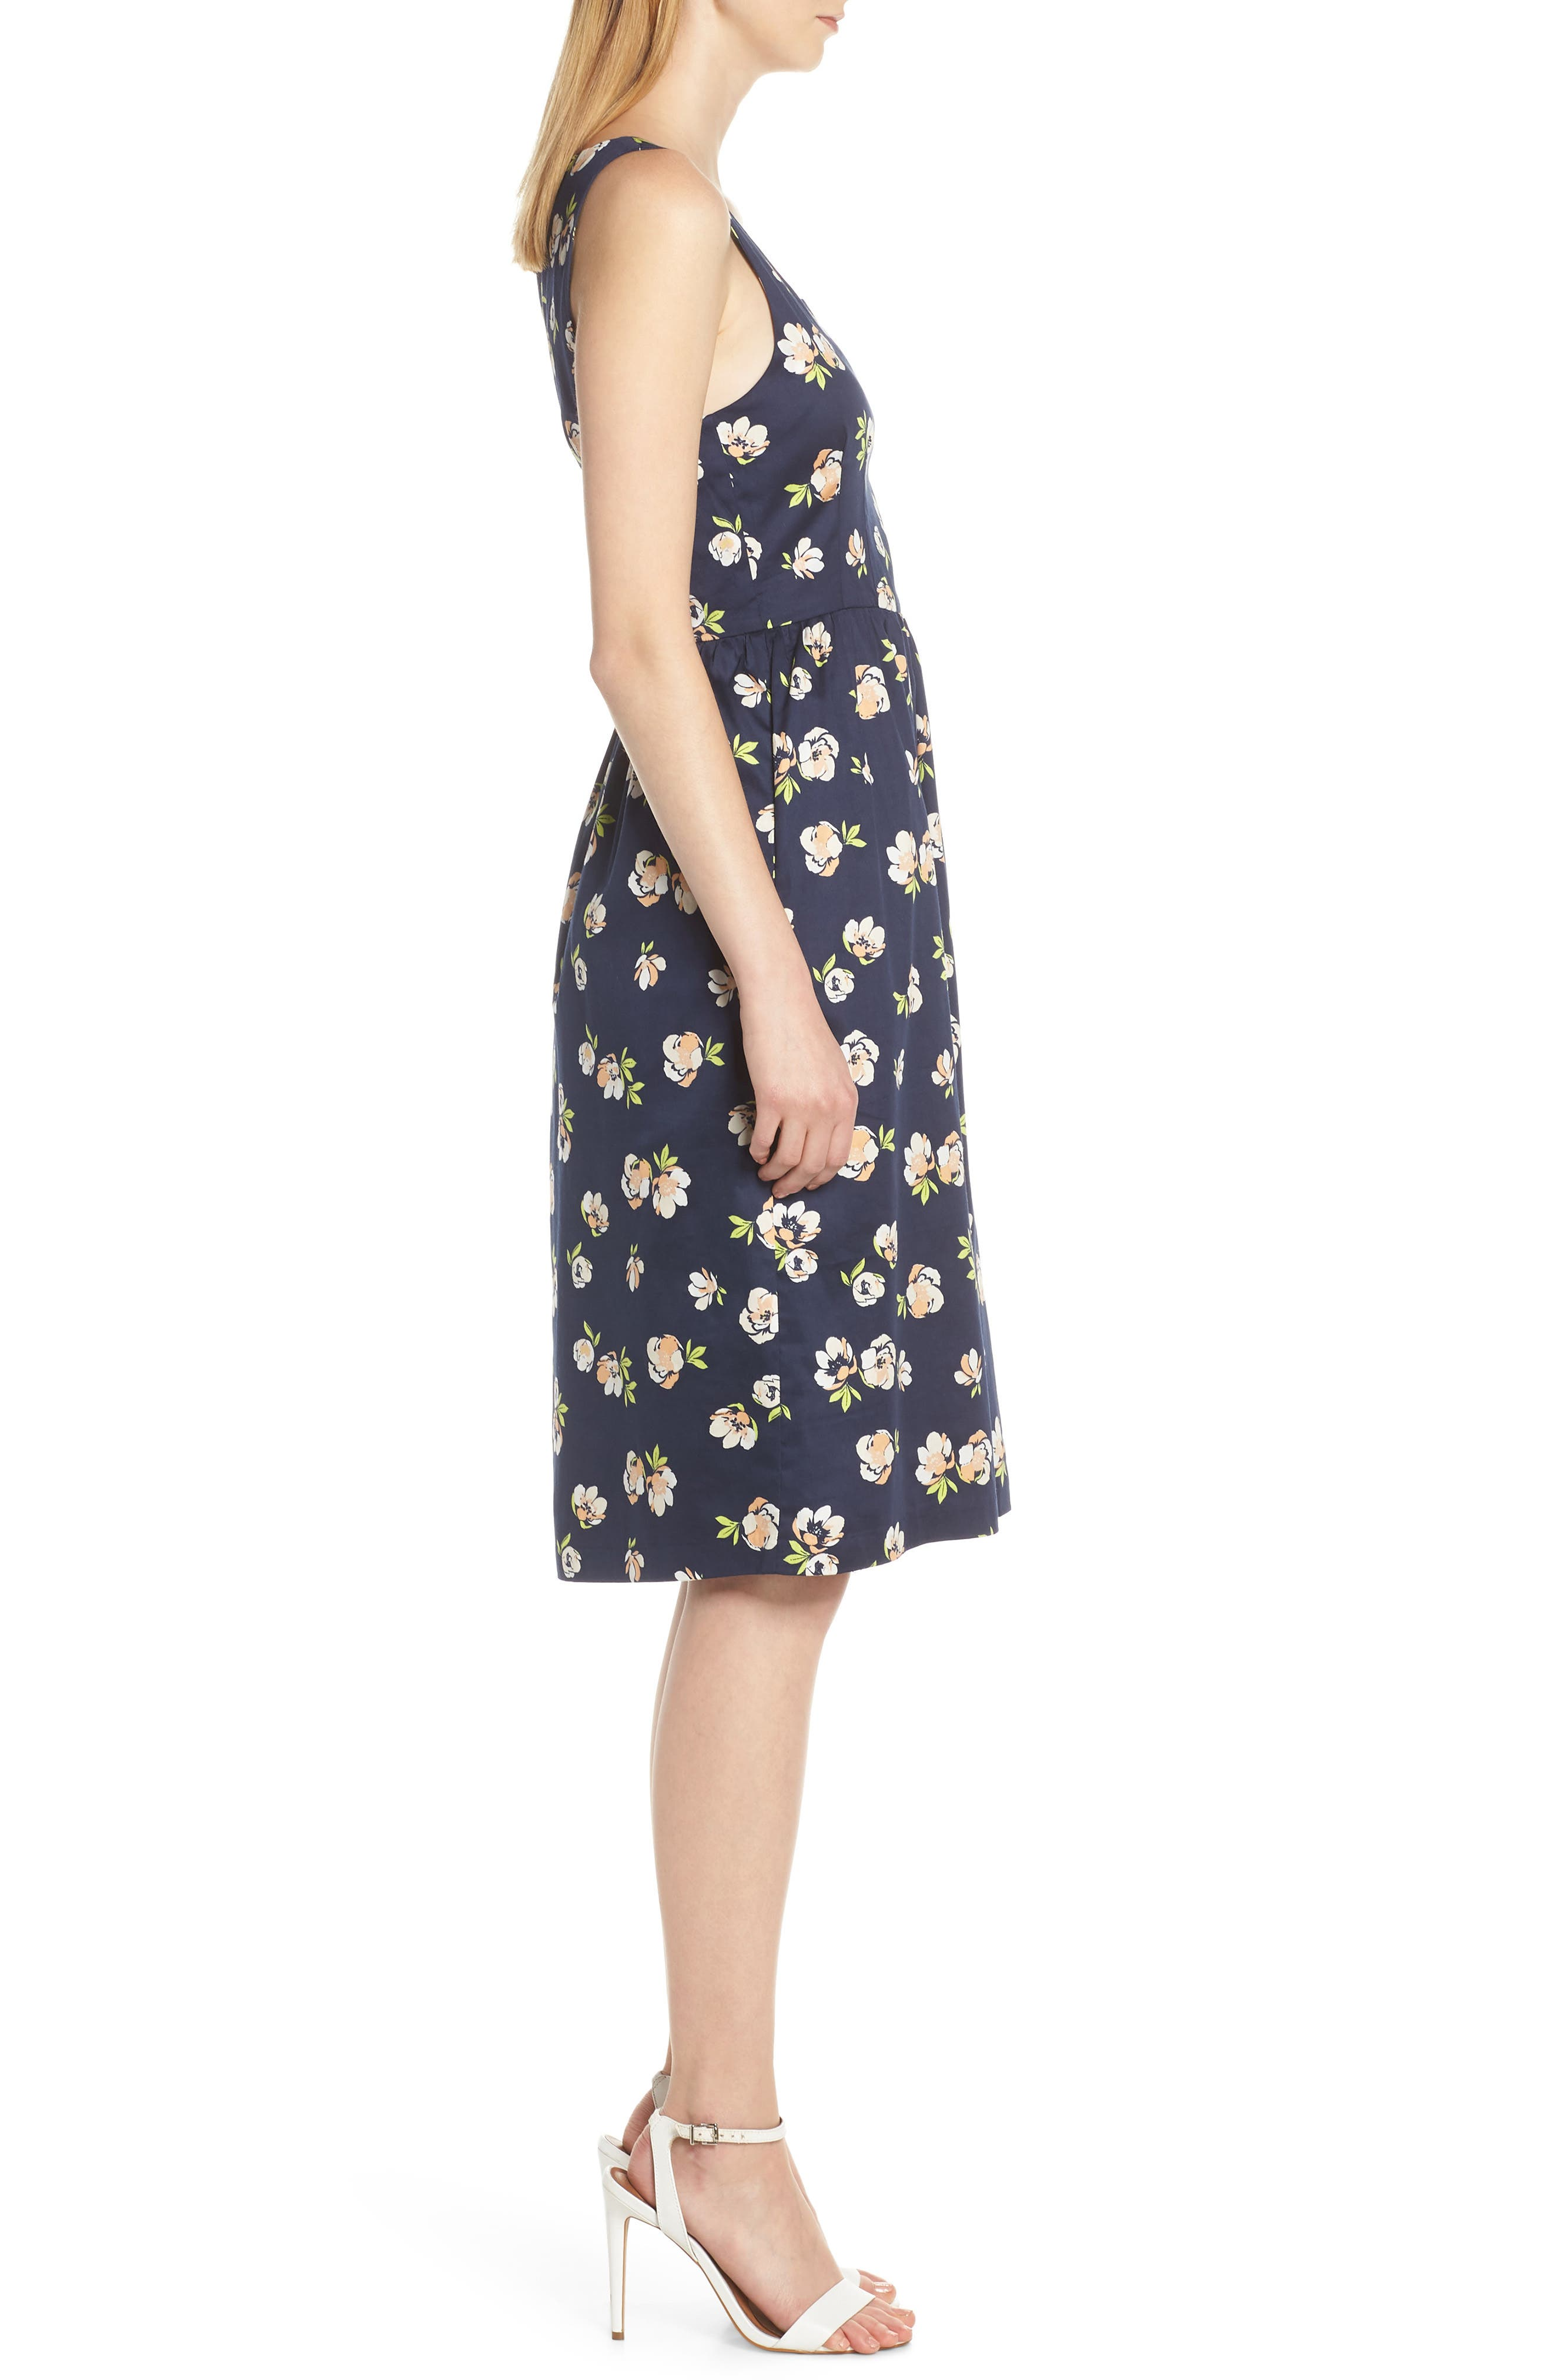 CHARLES HENRY, Sleeveless Fit & Flare Dress, Alternate thumbnail 4, color, NAVY PEACH FLORAL